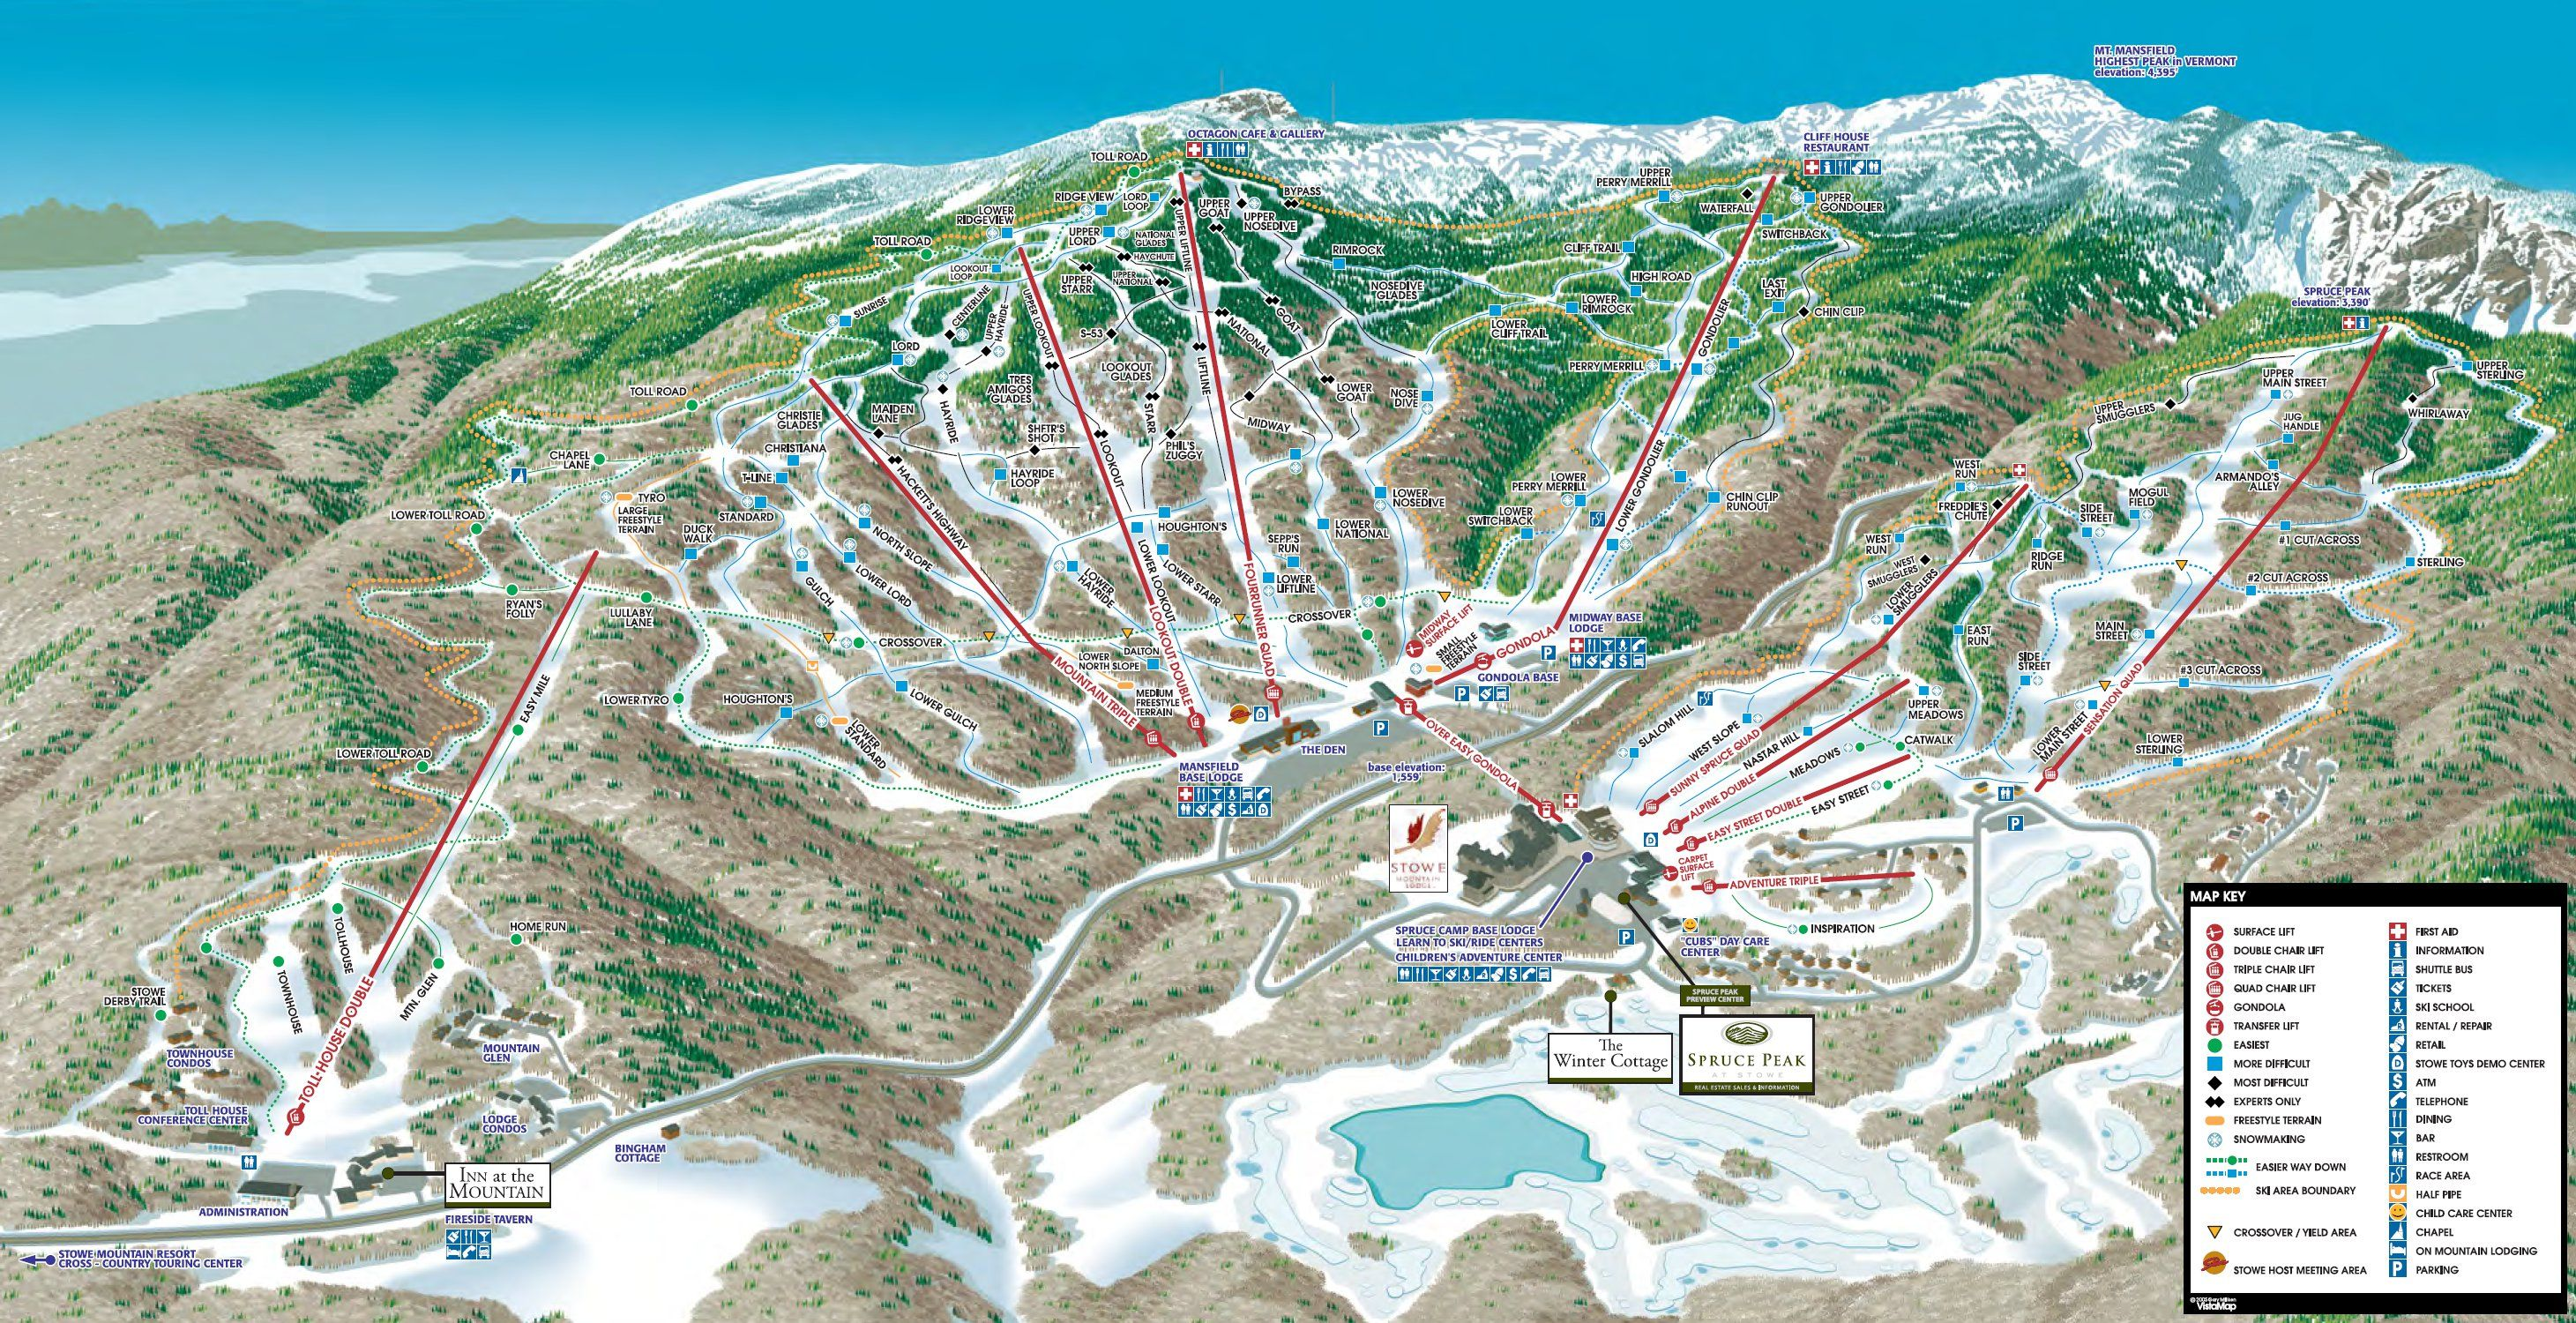 stowe trail map. | stowe, vermont | pinterest | skiing, trail maps